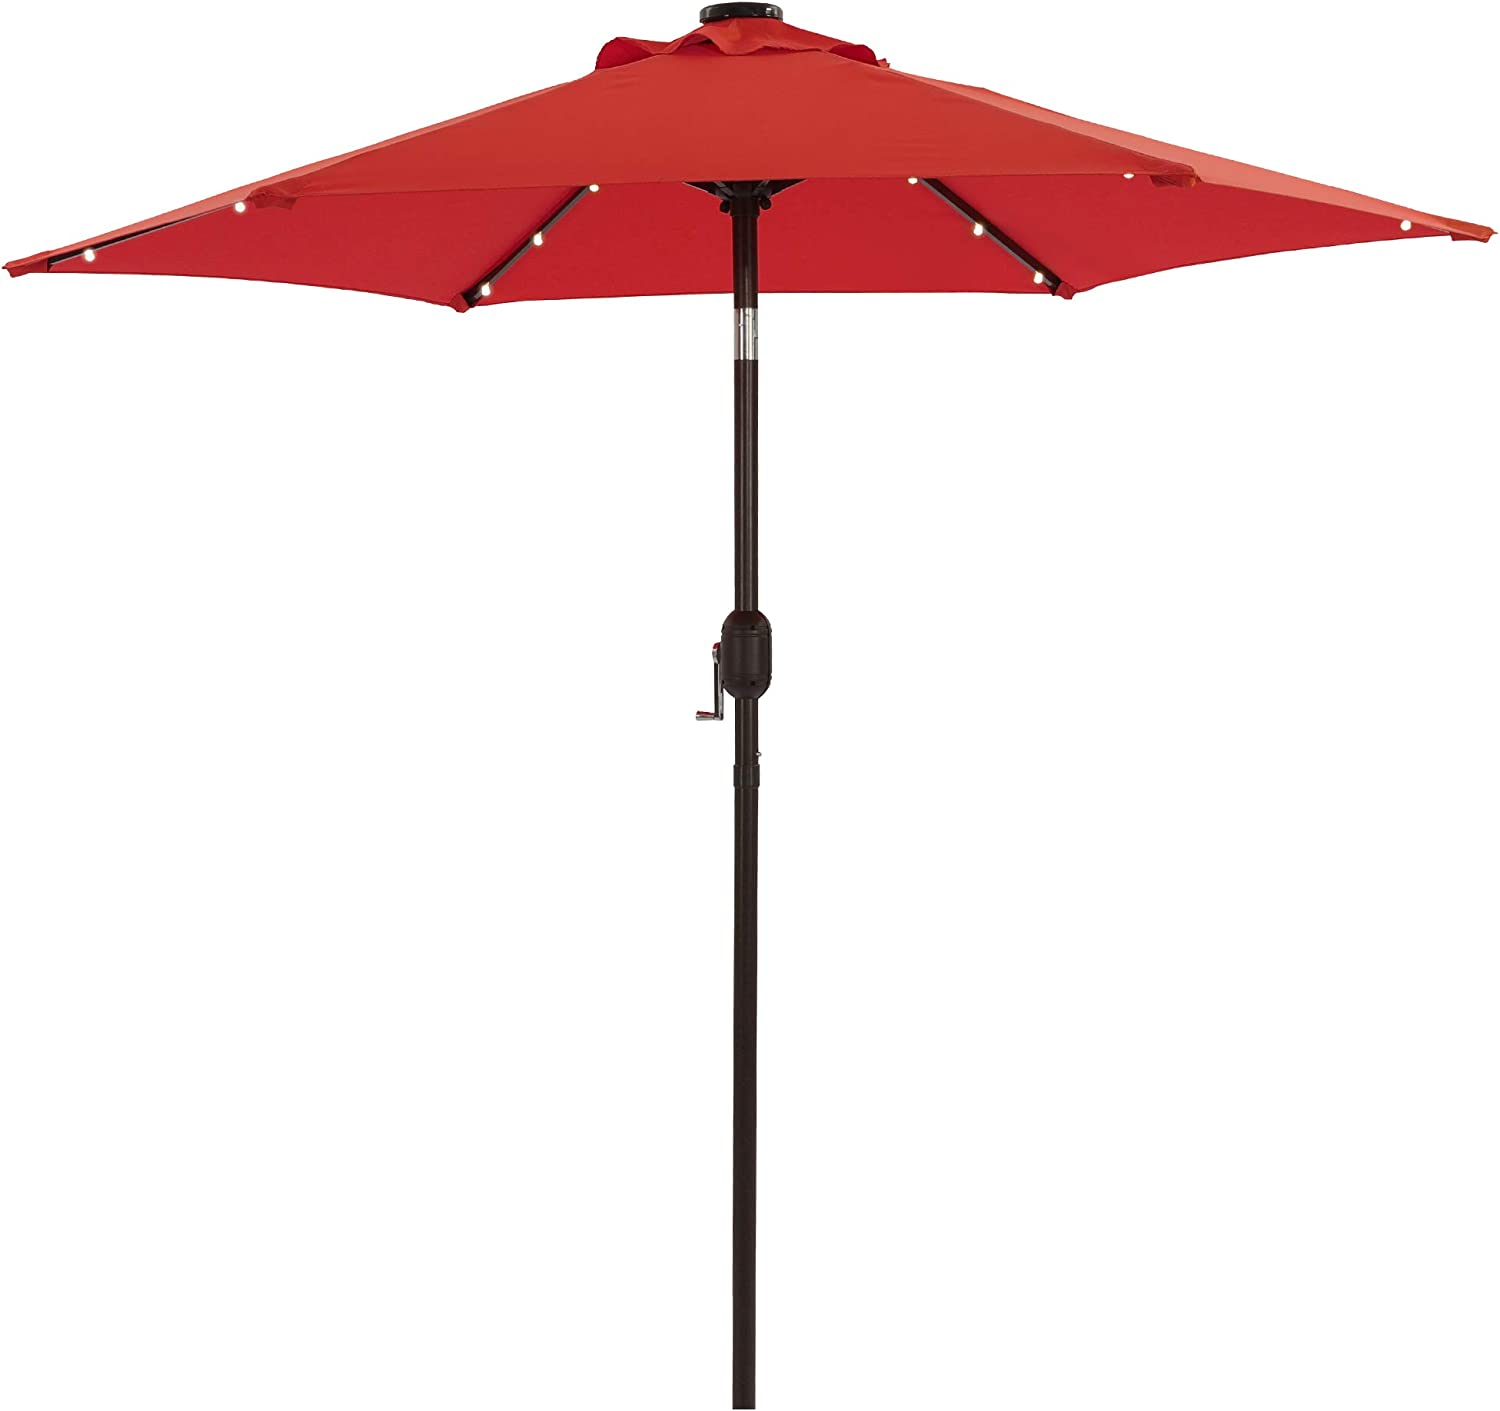 Aok Garden 7.5 ft Solar Patio Umbrella with 18 LED Lights Outdoor Table Market Umbrella with Push Button Tilt and Crank 6 Sturdy Aluminum Ribs for Deck, Lawn, Pool& Backyard, Chili Red